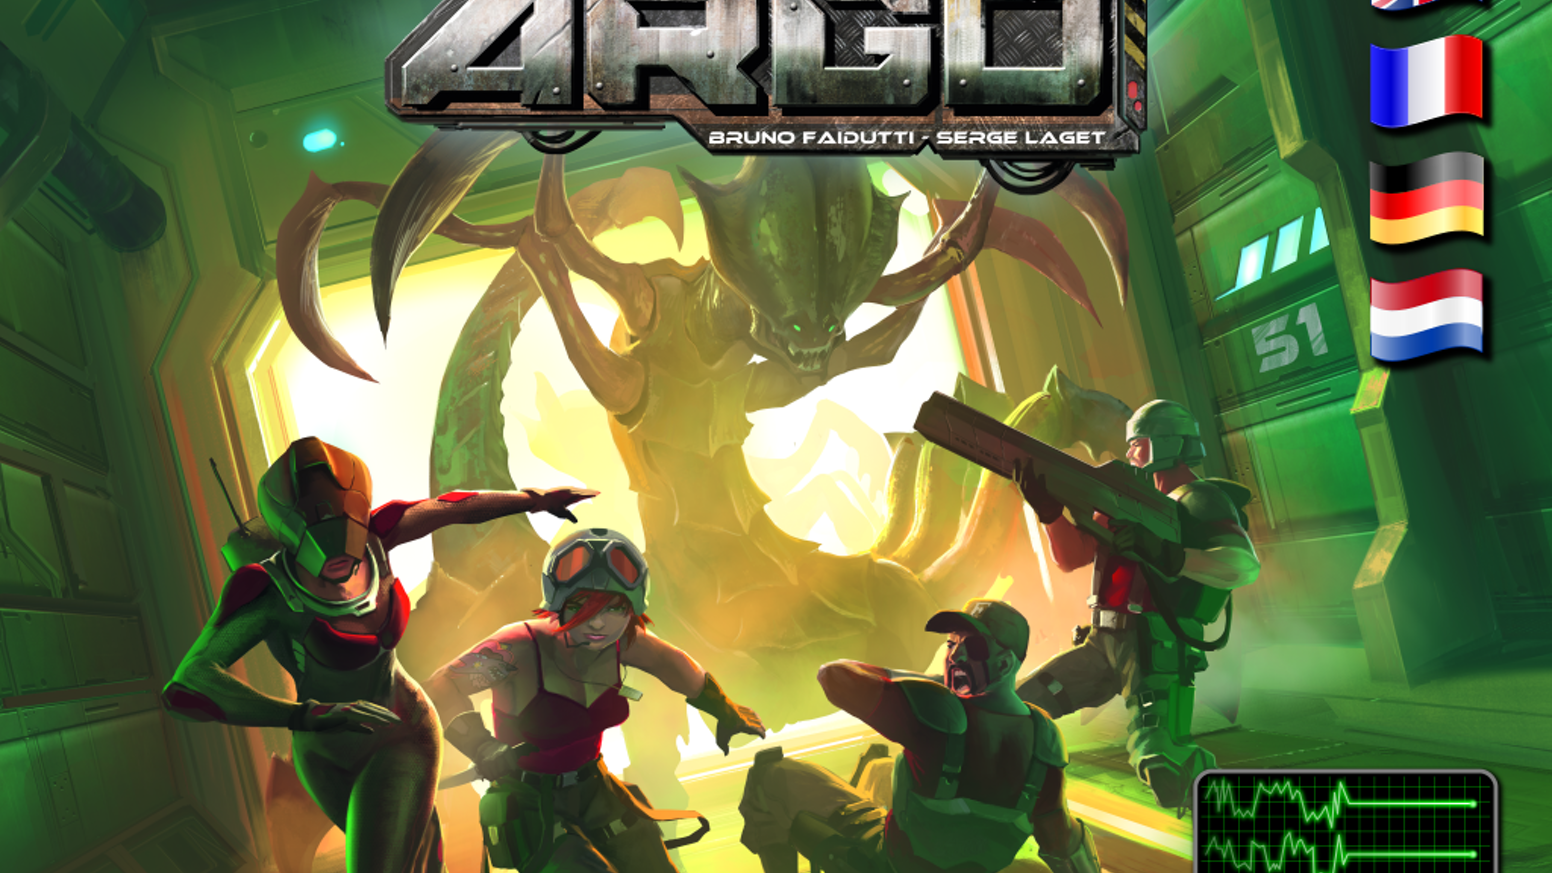 """Argo is a space station crawler, with a big puzzle aspect and a unique """"not-cooperative but you have to behave"""" twist.A game by Serge Laget and Bruno Faidutti."""